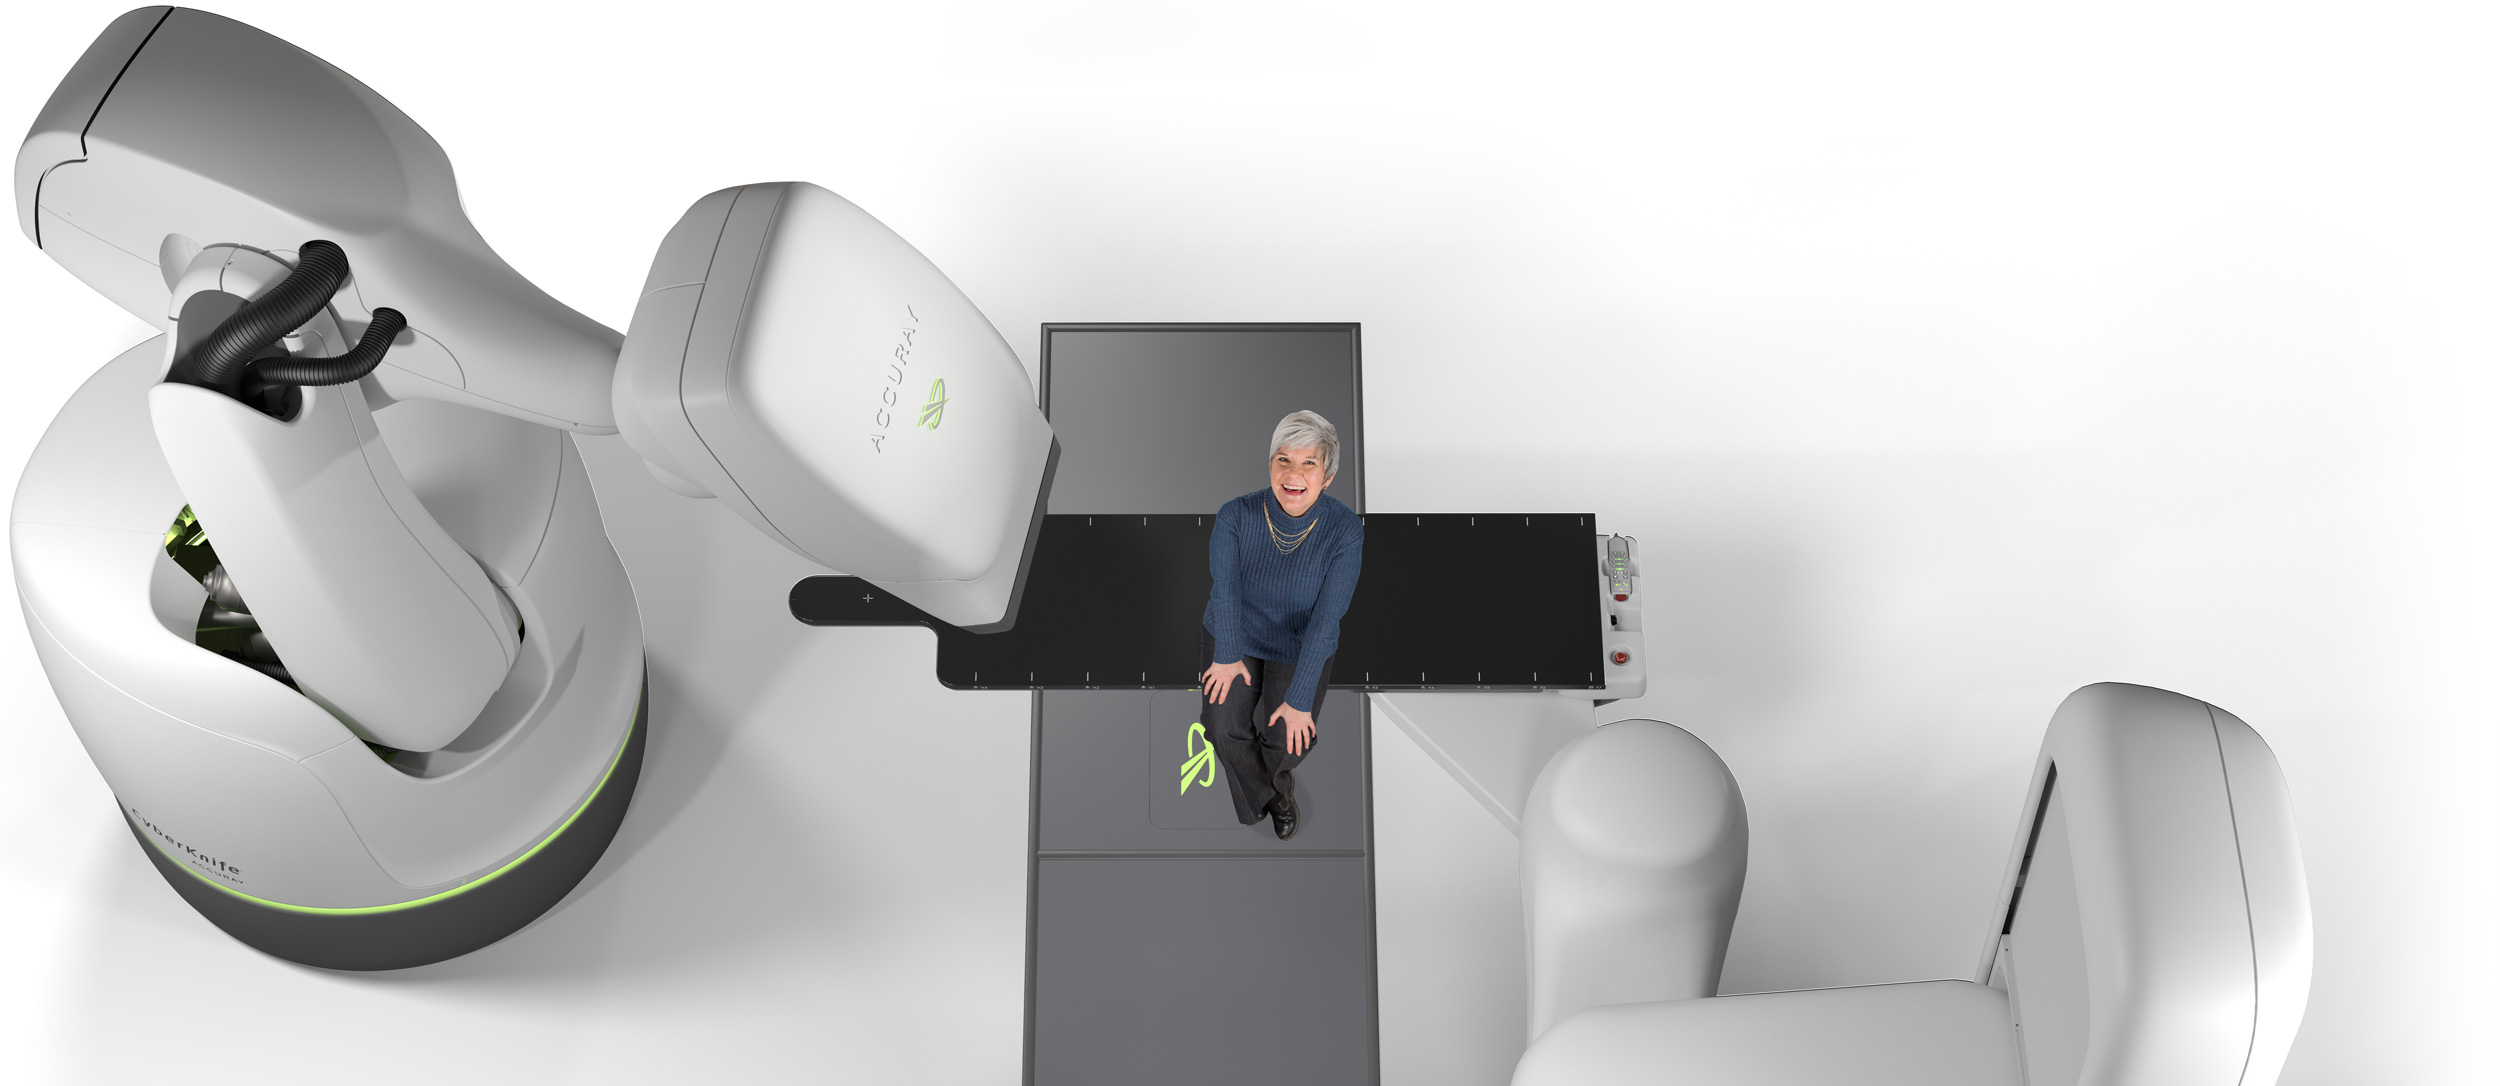 Radiotherapy treatment with CyberKnife is approved many types of cancer